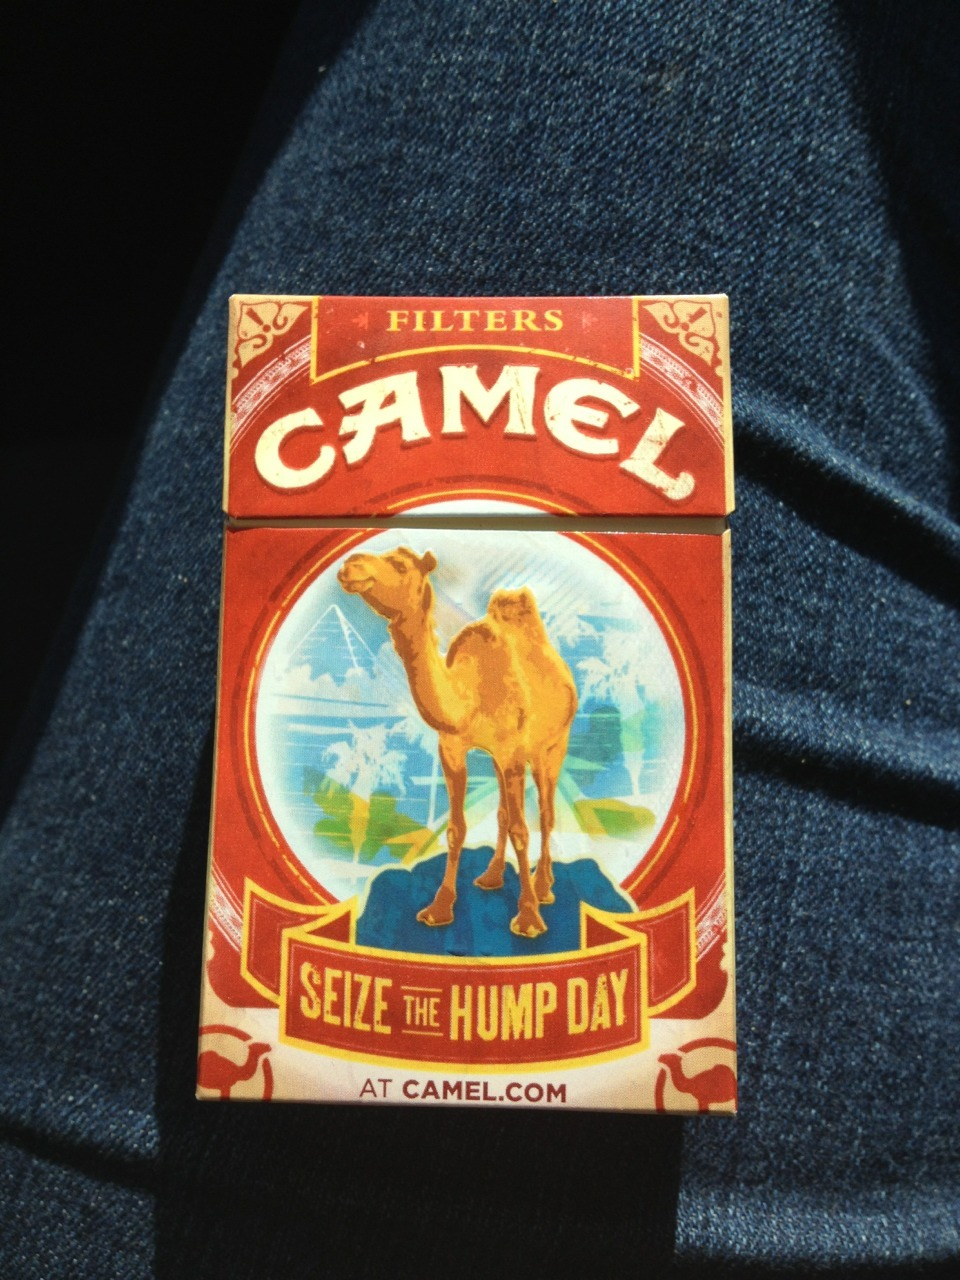 luv dat hump day box